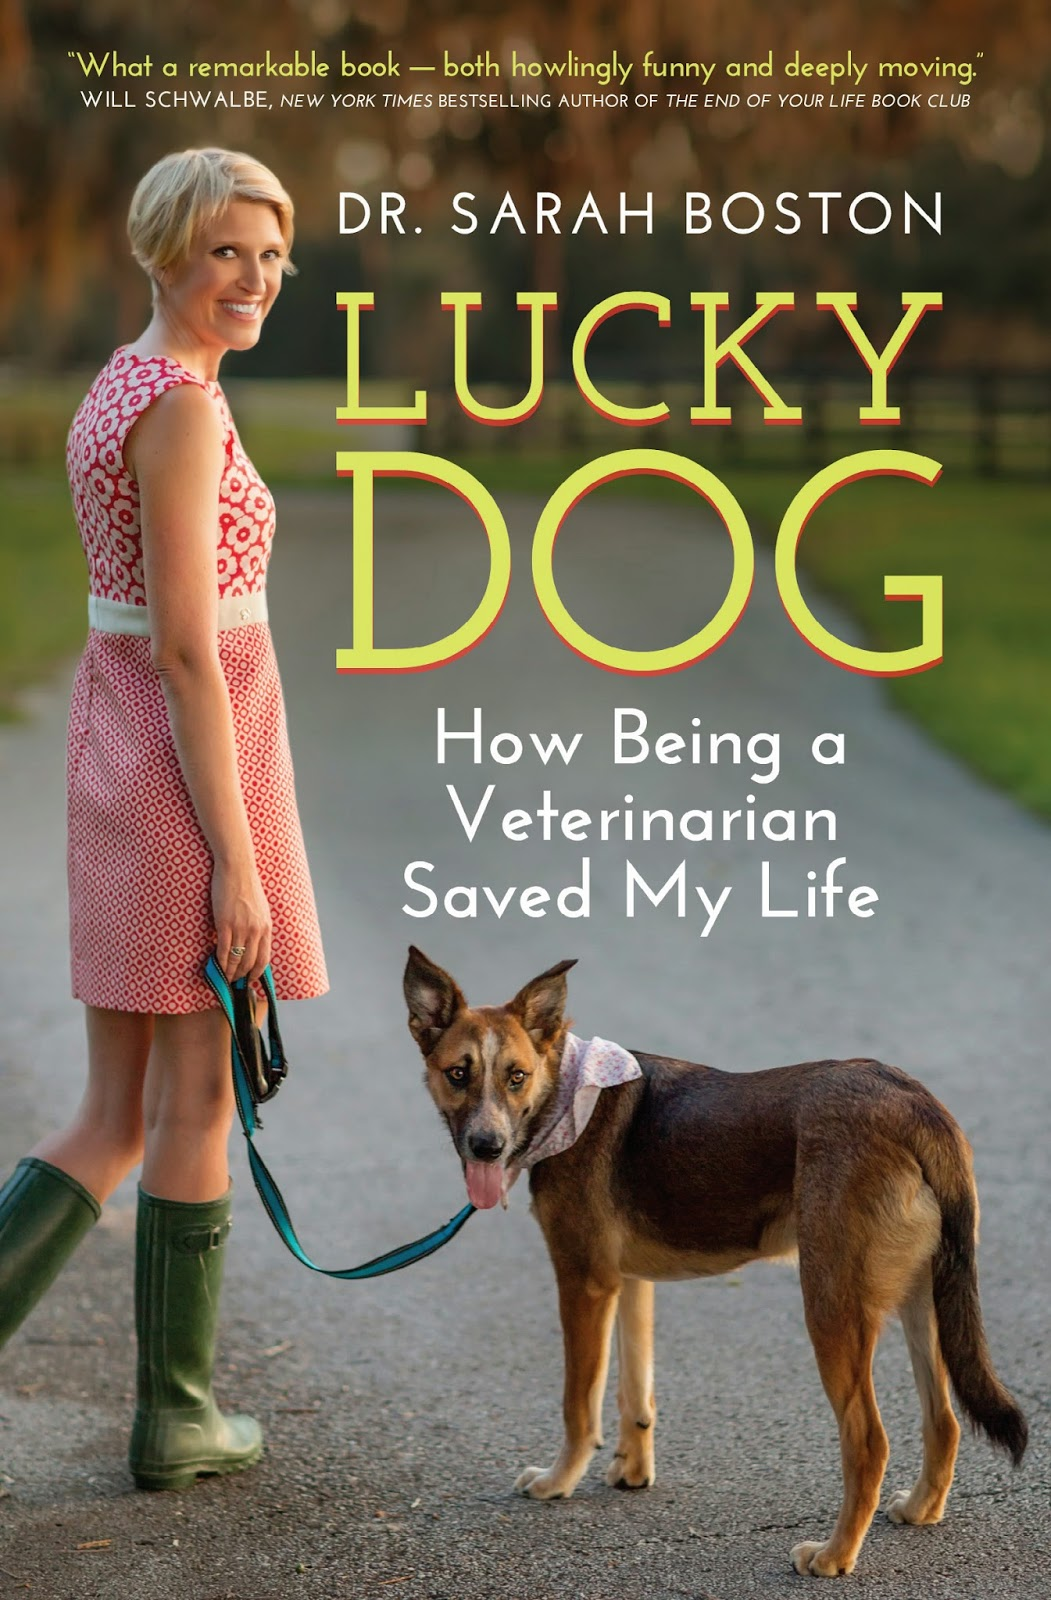 Interview with veterinarian and memoirist Dr. Sarah Boston